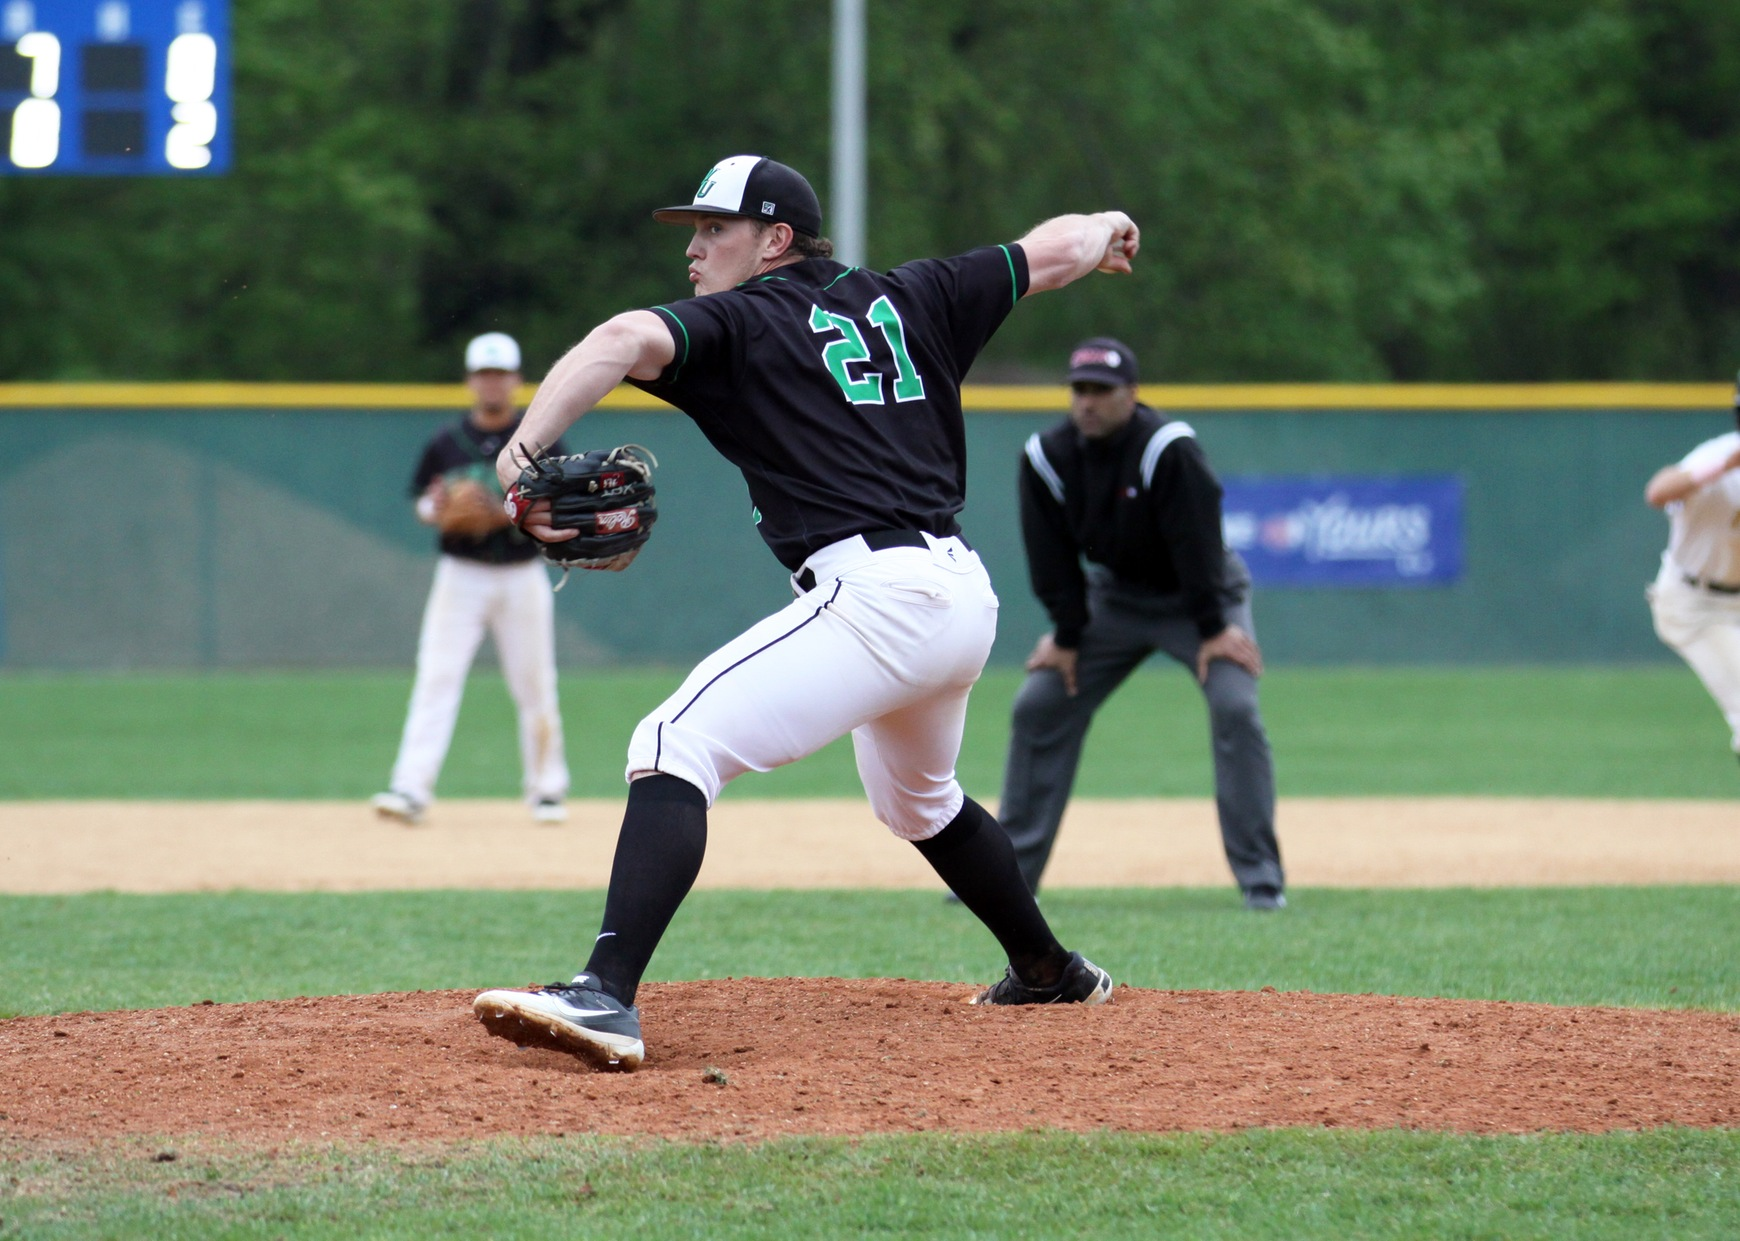 Copyright 2018; Wilmington University. All rights reserved. Photo by Dan Lauletta. May 13, 2018 vs. Felician in CACC Championship game 2.